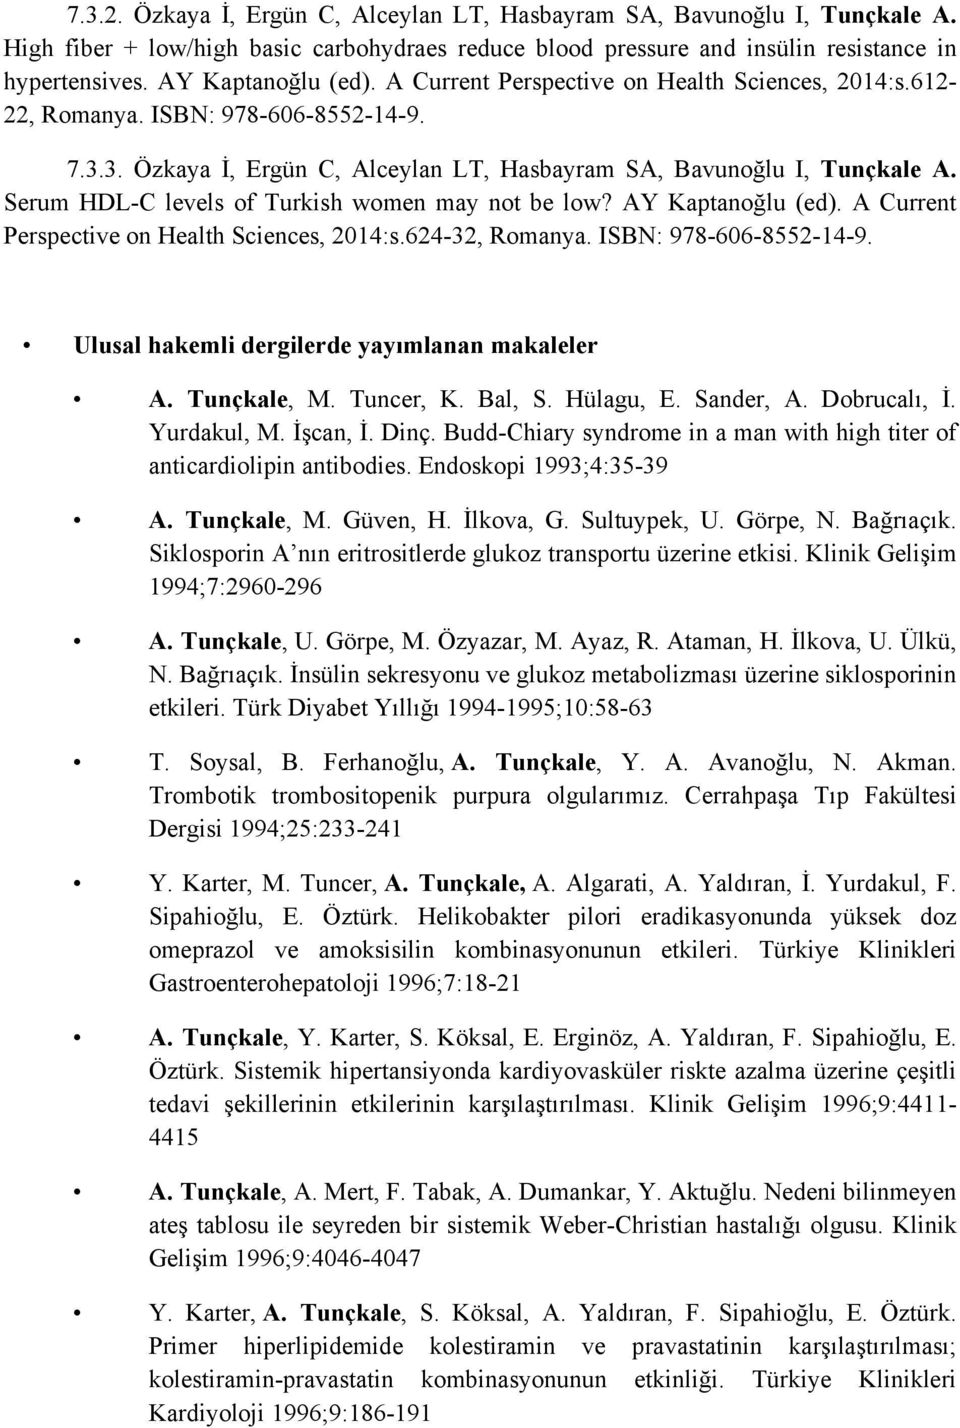 Serum HDL-C levels of Turkish women may not be low? AY Kaptanoğlu (ed). A Current Perspective on Health Sciences, 2014:s.624-32, Romanya. ISBN: 978-606-8552-14-9.